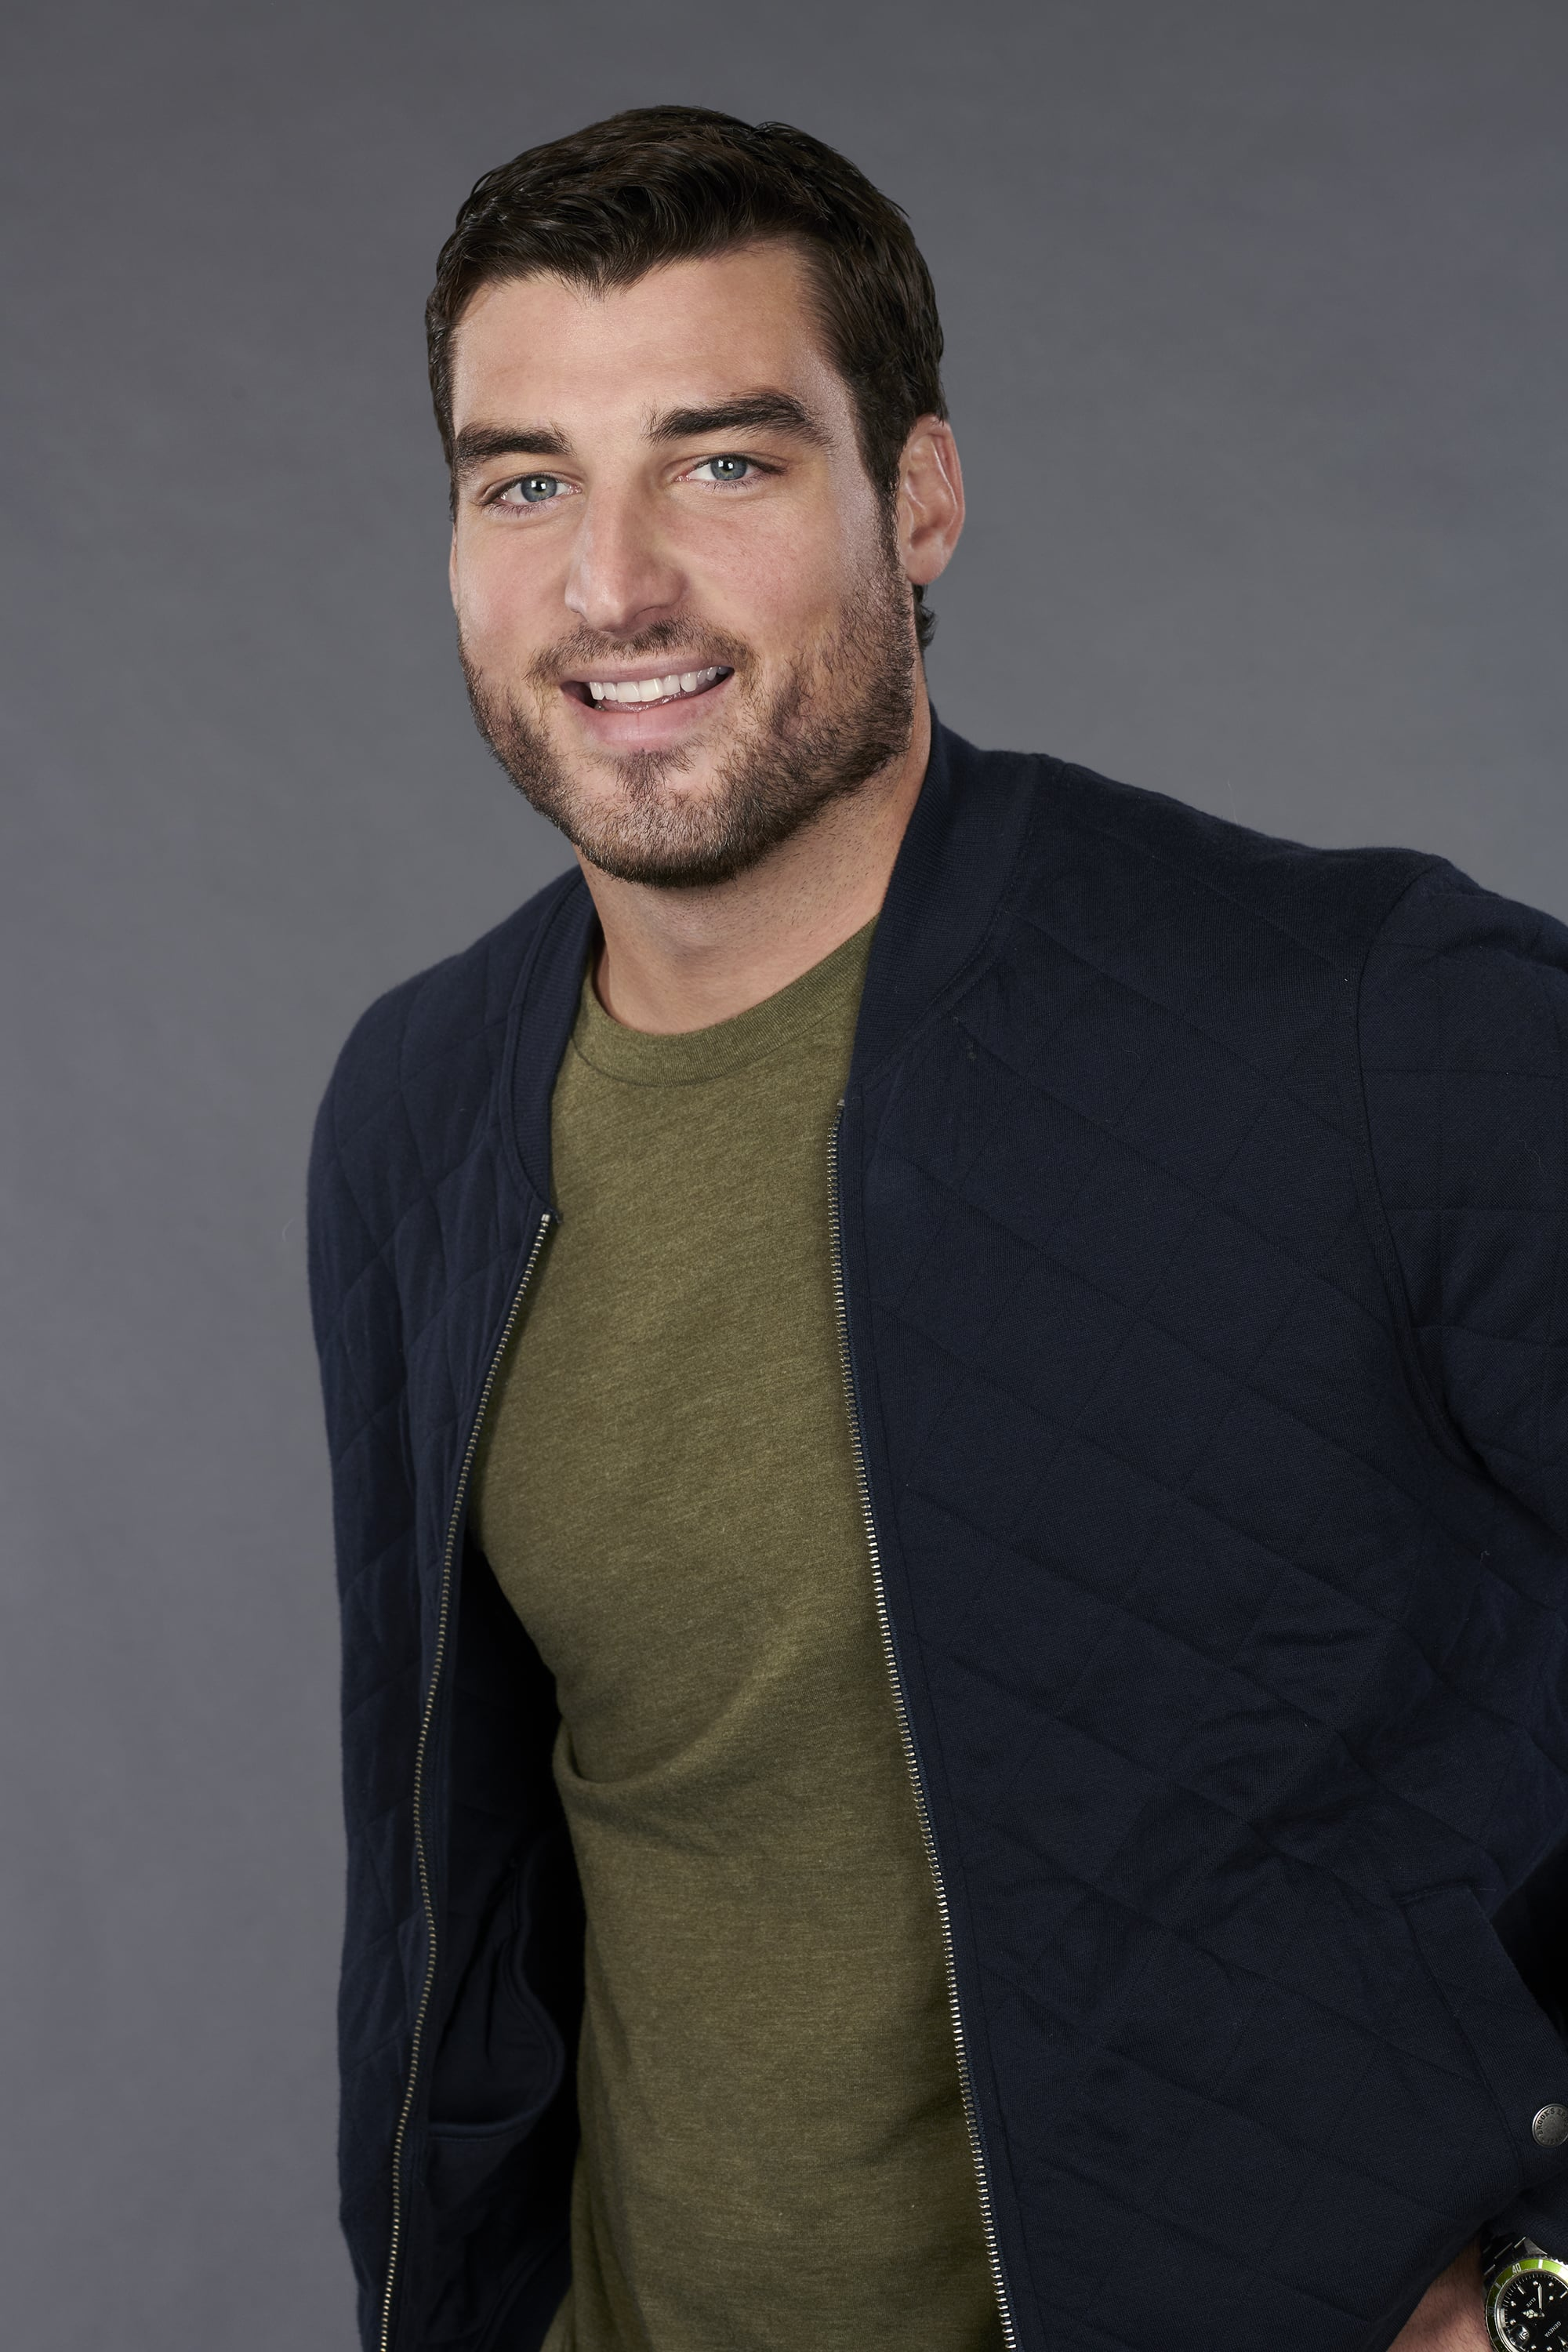 THE BACHELORETTE - Hannah Brown caught the eye of Colton Underwood early on during the 23rd season of